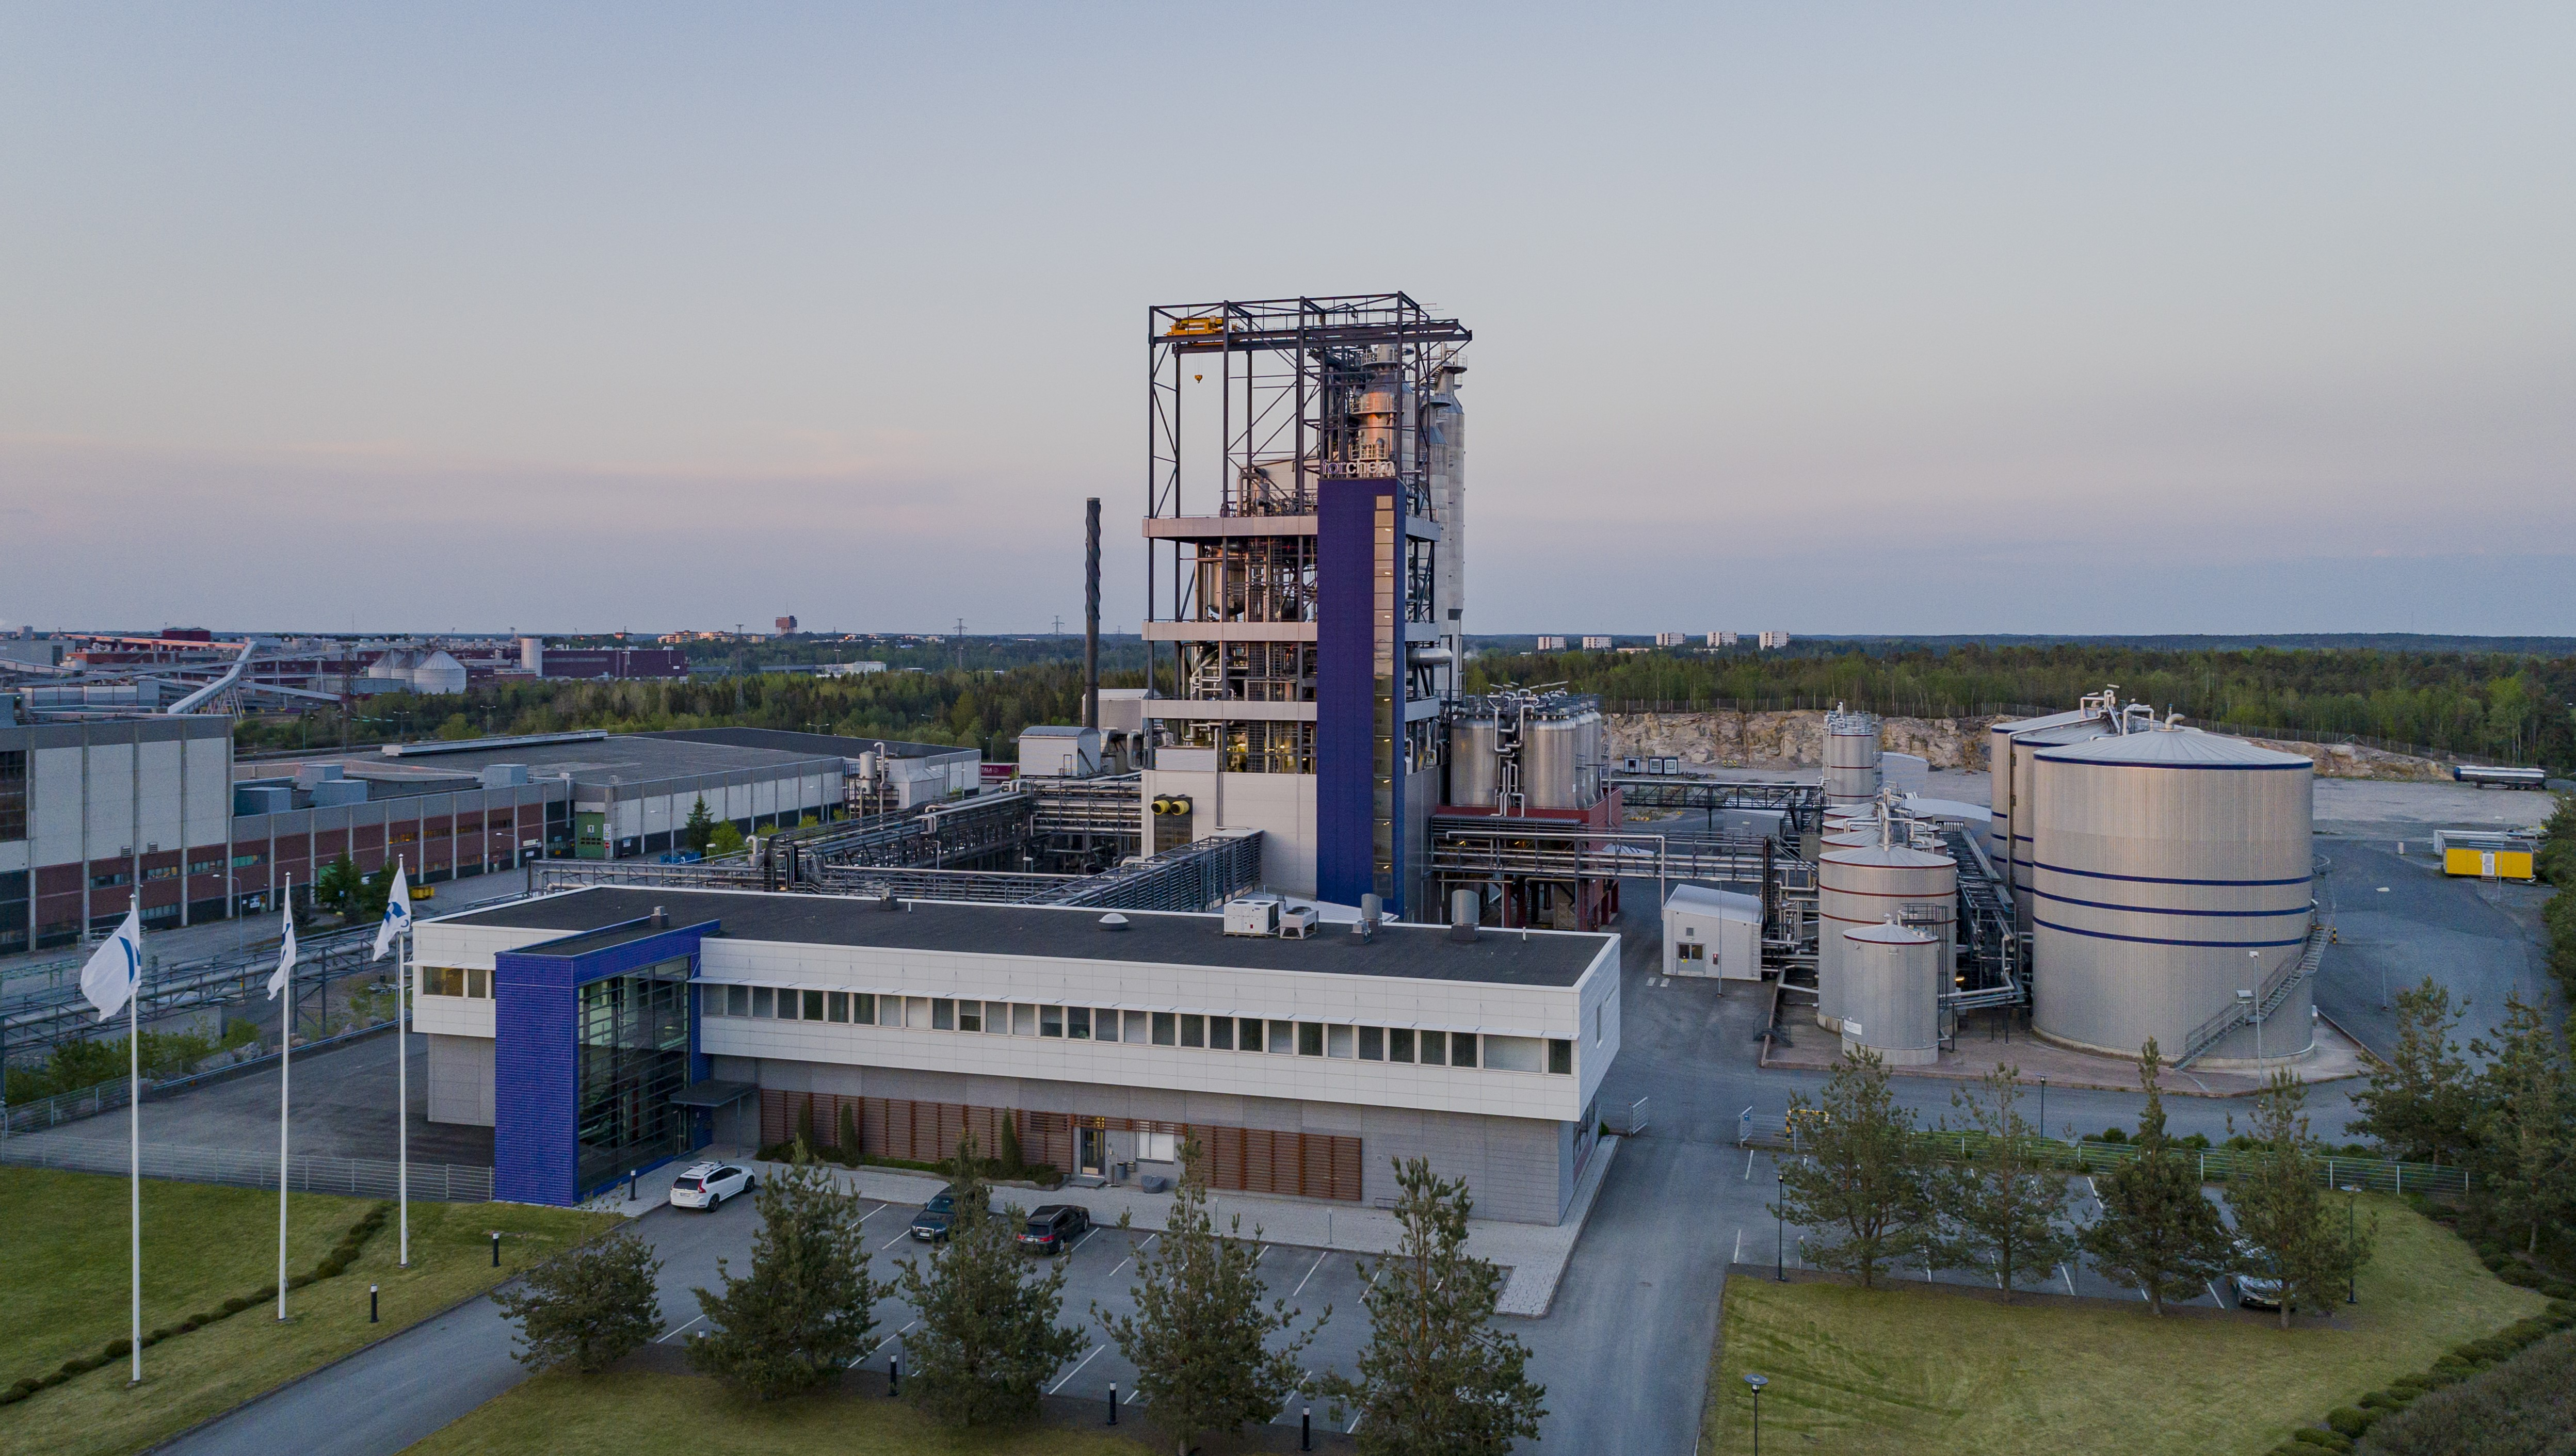 Tall City Delivery >> The Finnish Cleantech Company Forchem Switches To Lng The